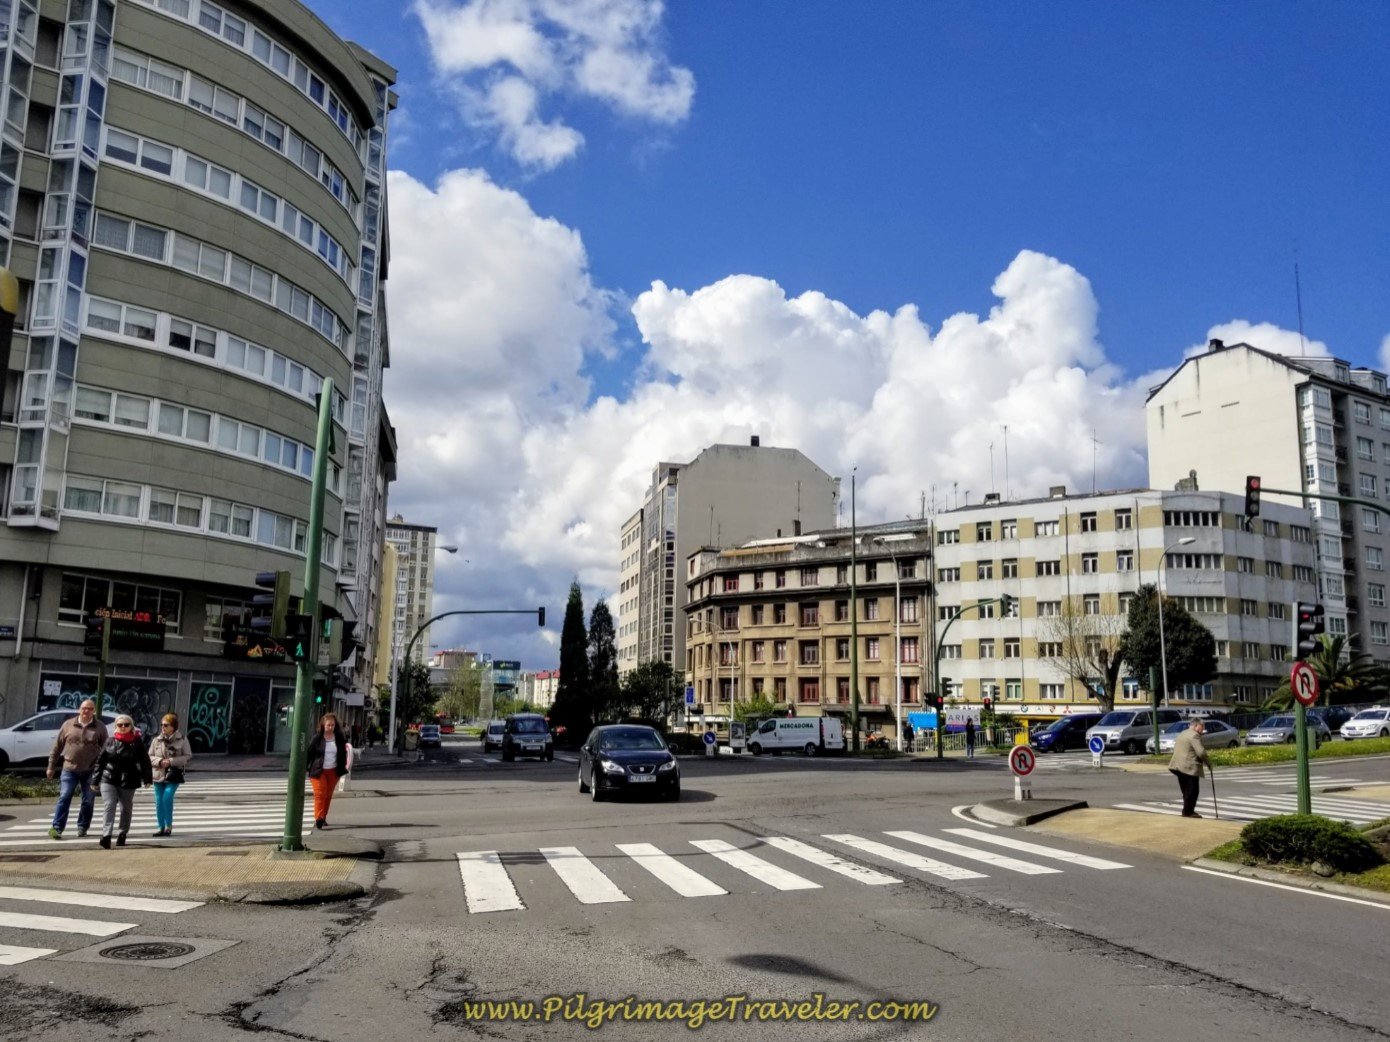 Stay On the Av. Alcalde Pérez Arda Through  Intersection, in La Coruña on day one of the La Coruña Arm of the Camino Inglés